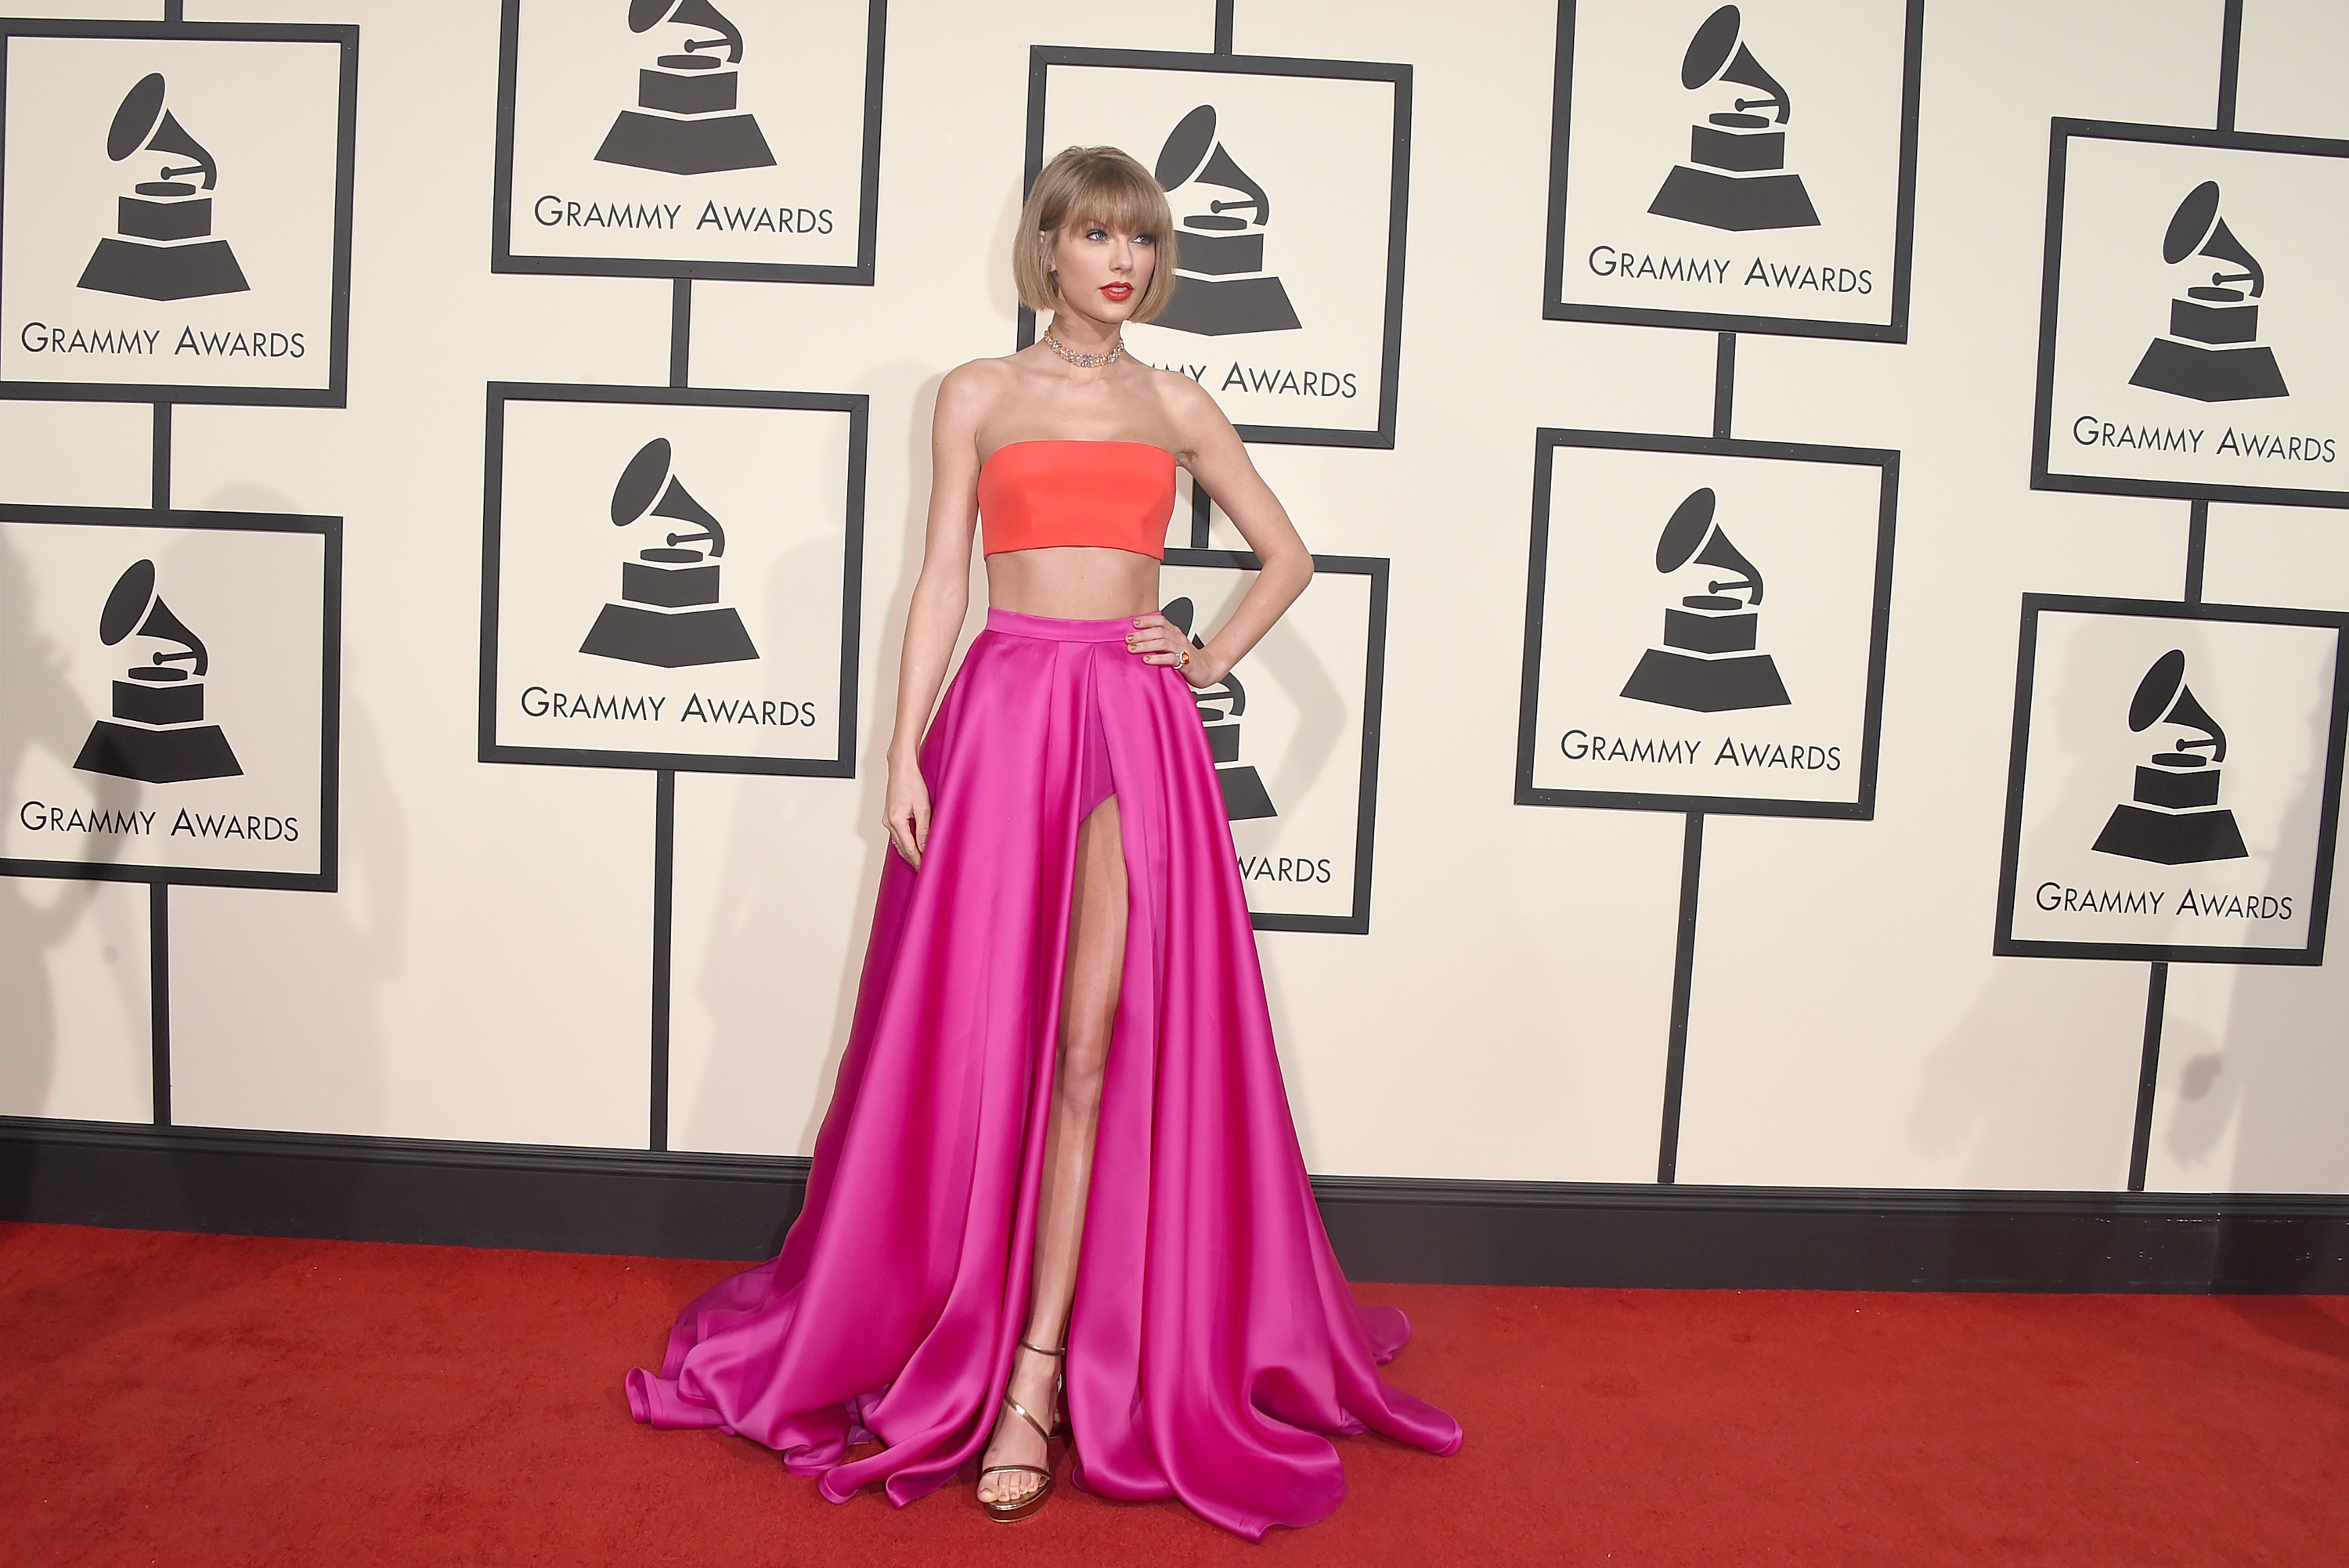 Taylor Swift at the Grammys 2016